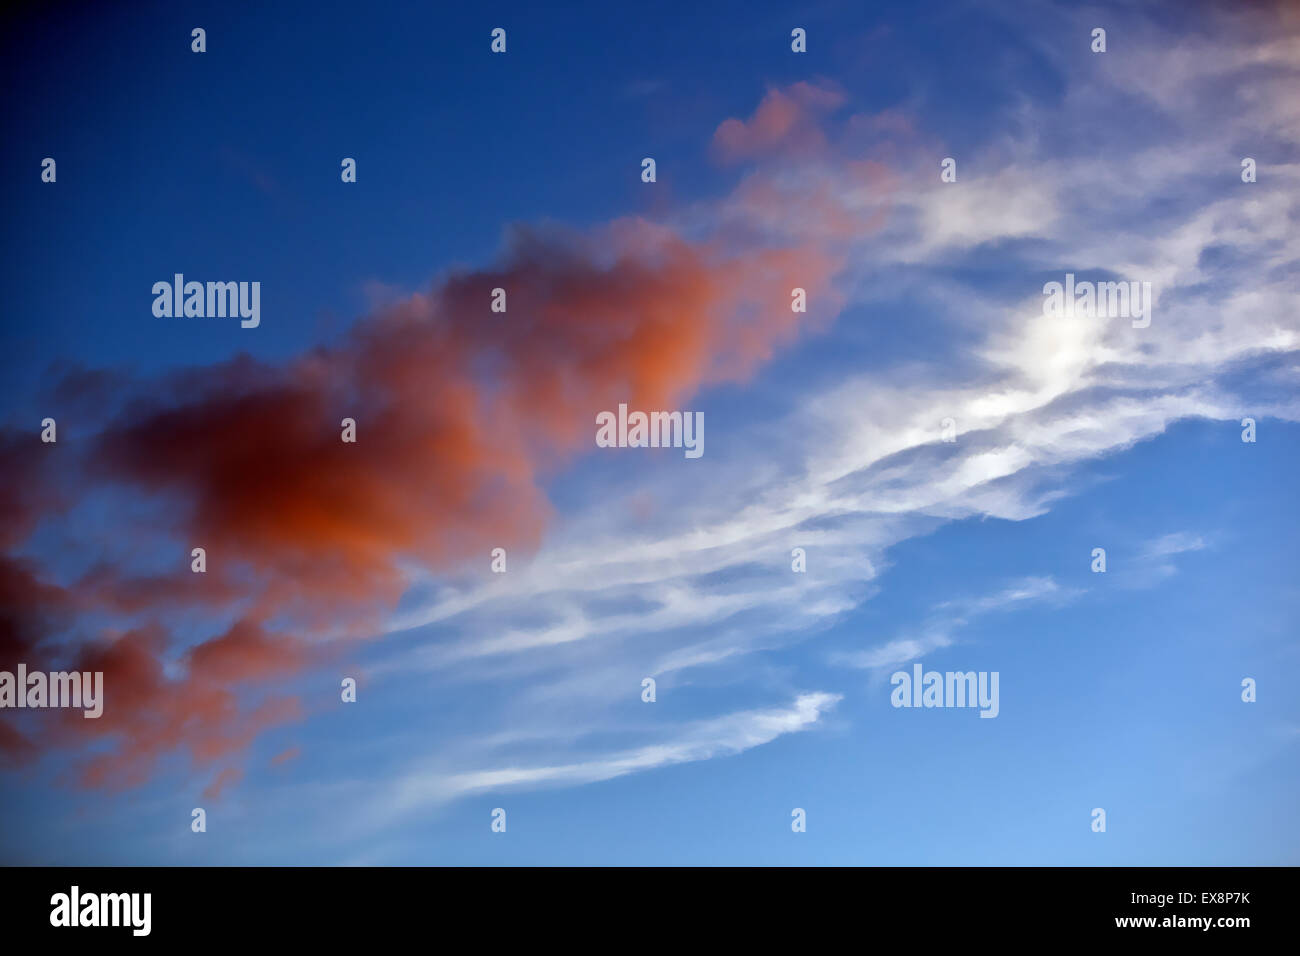 sunset reveals a gorgeous sky with the promise of good weather ahead - Stock Image